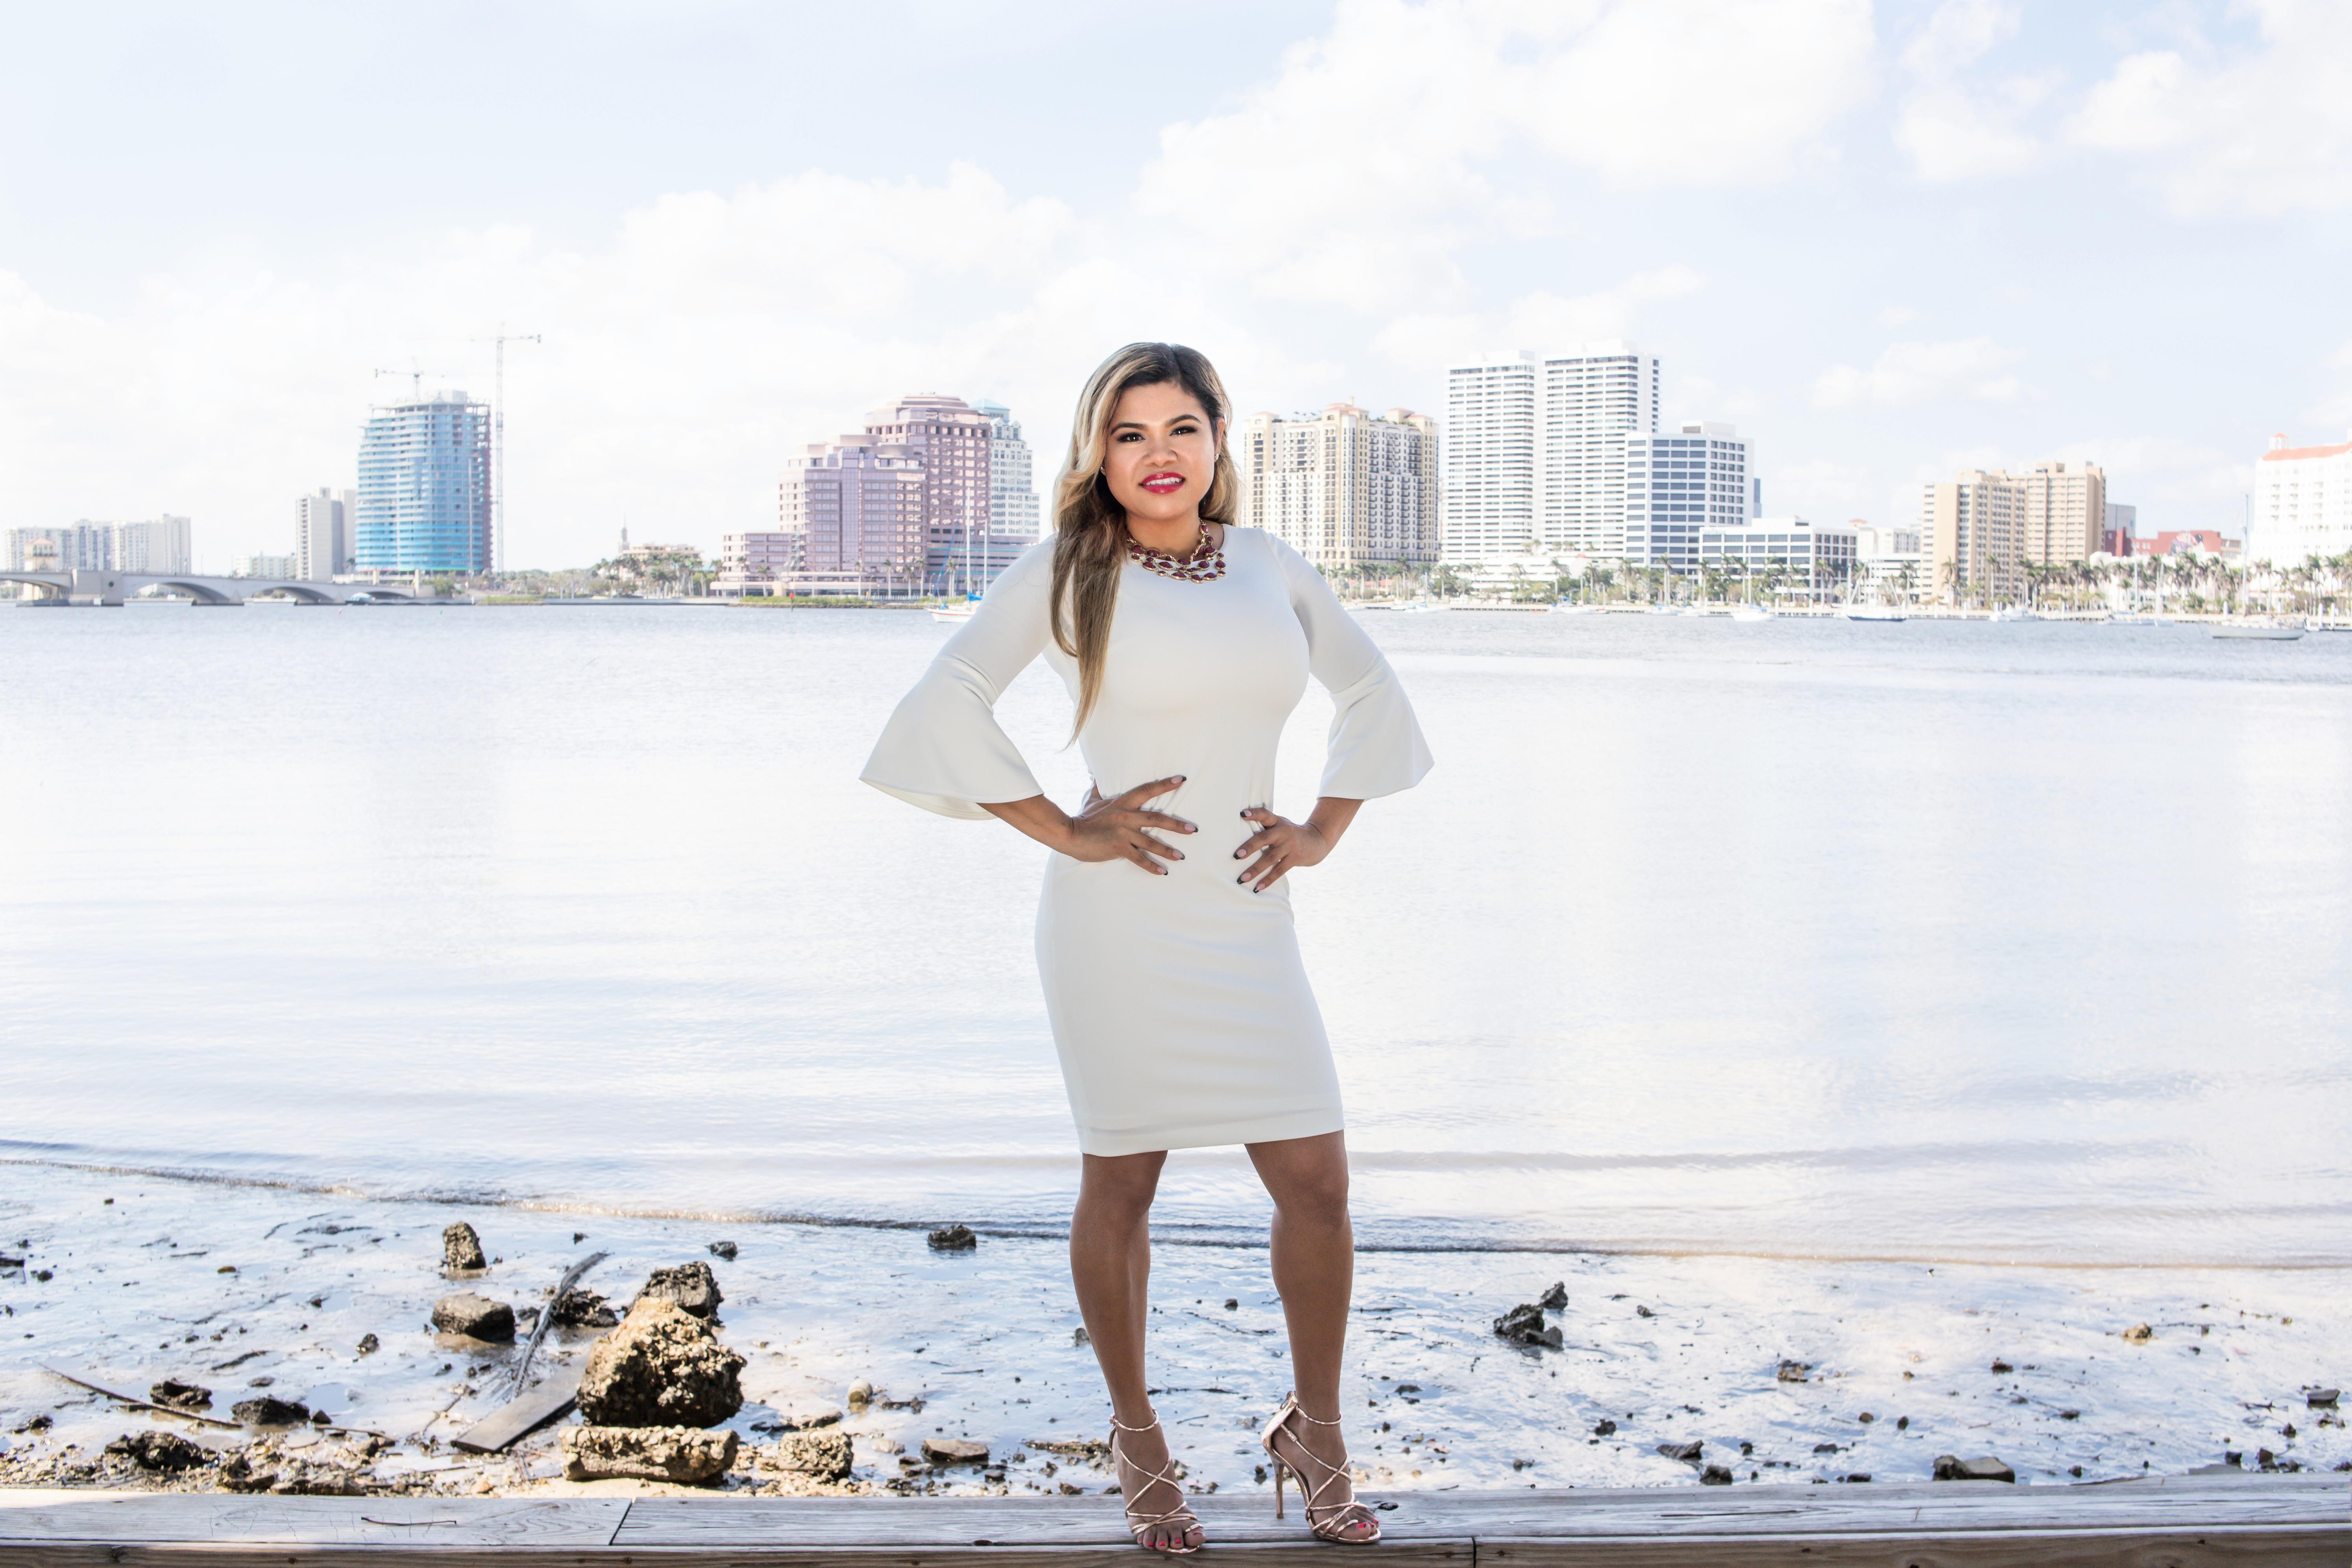 crissy-medina-real-estate-portraits-coastal-click-photography-2_pp